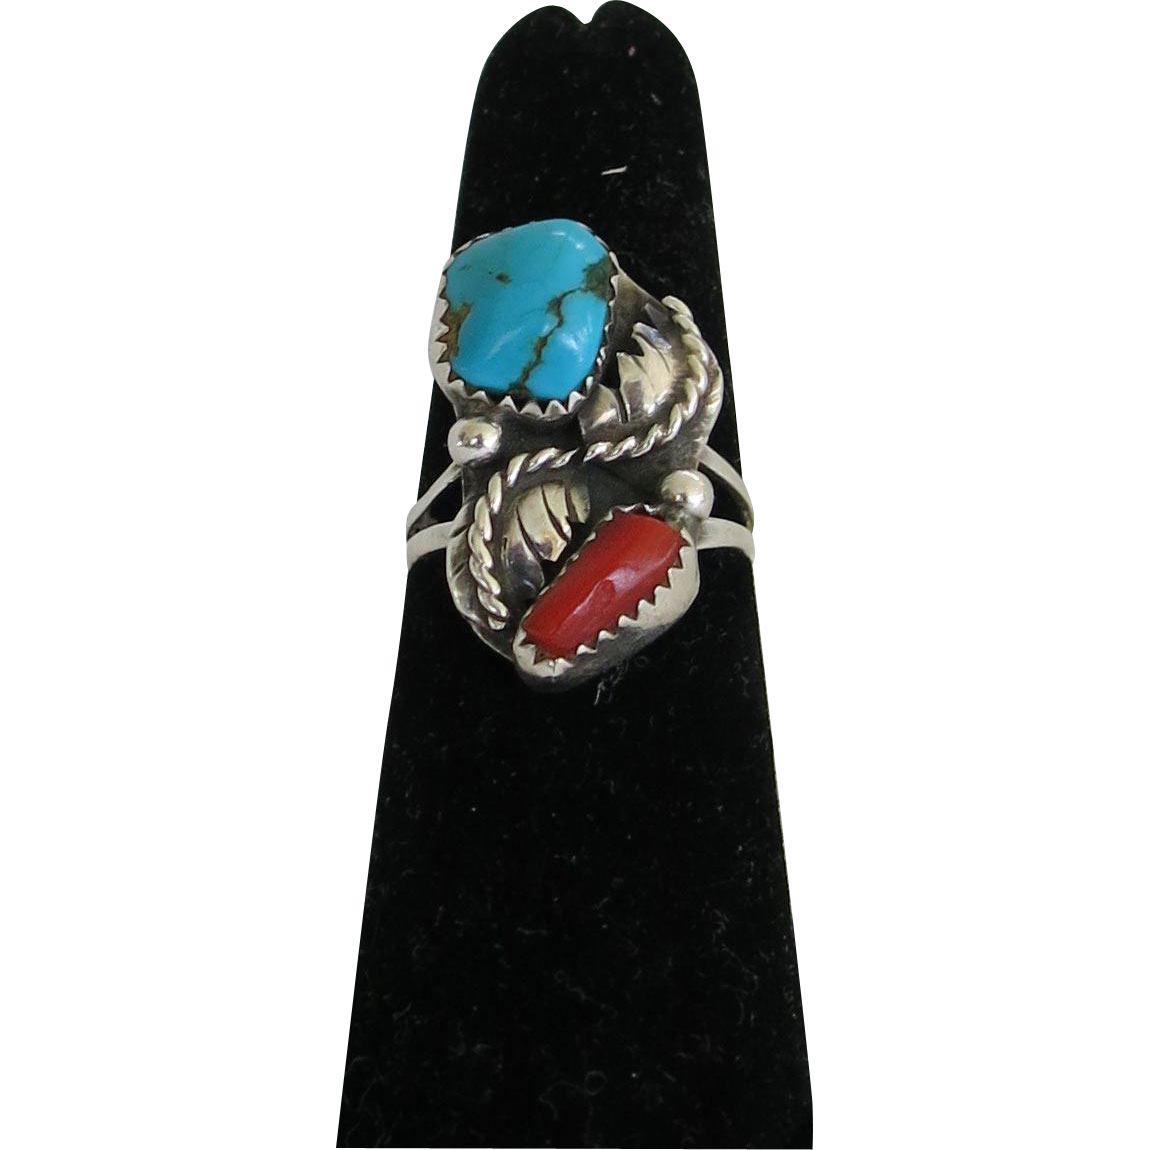 Vintage Turquoise Coral Sterling Silver Ring Size 6.25